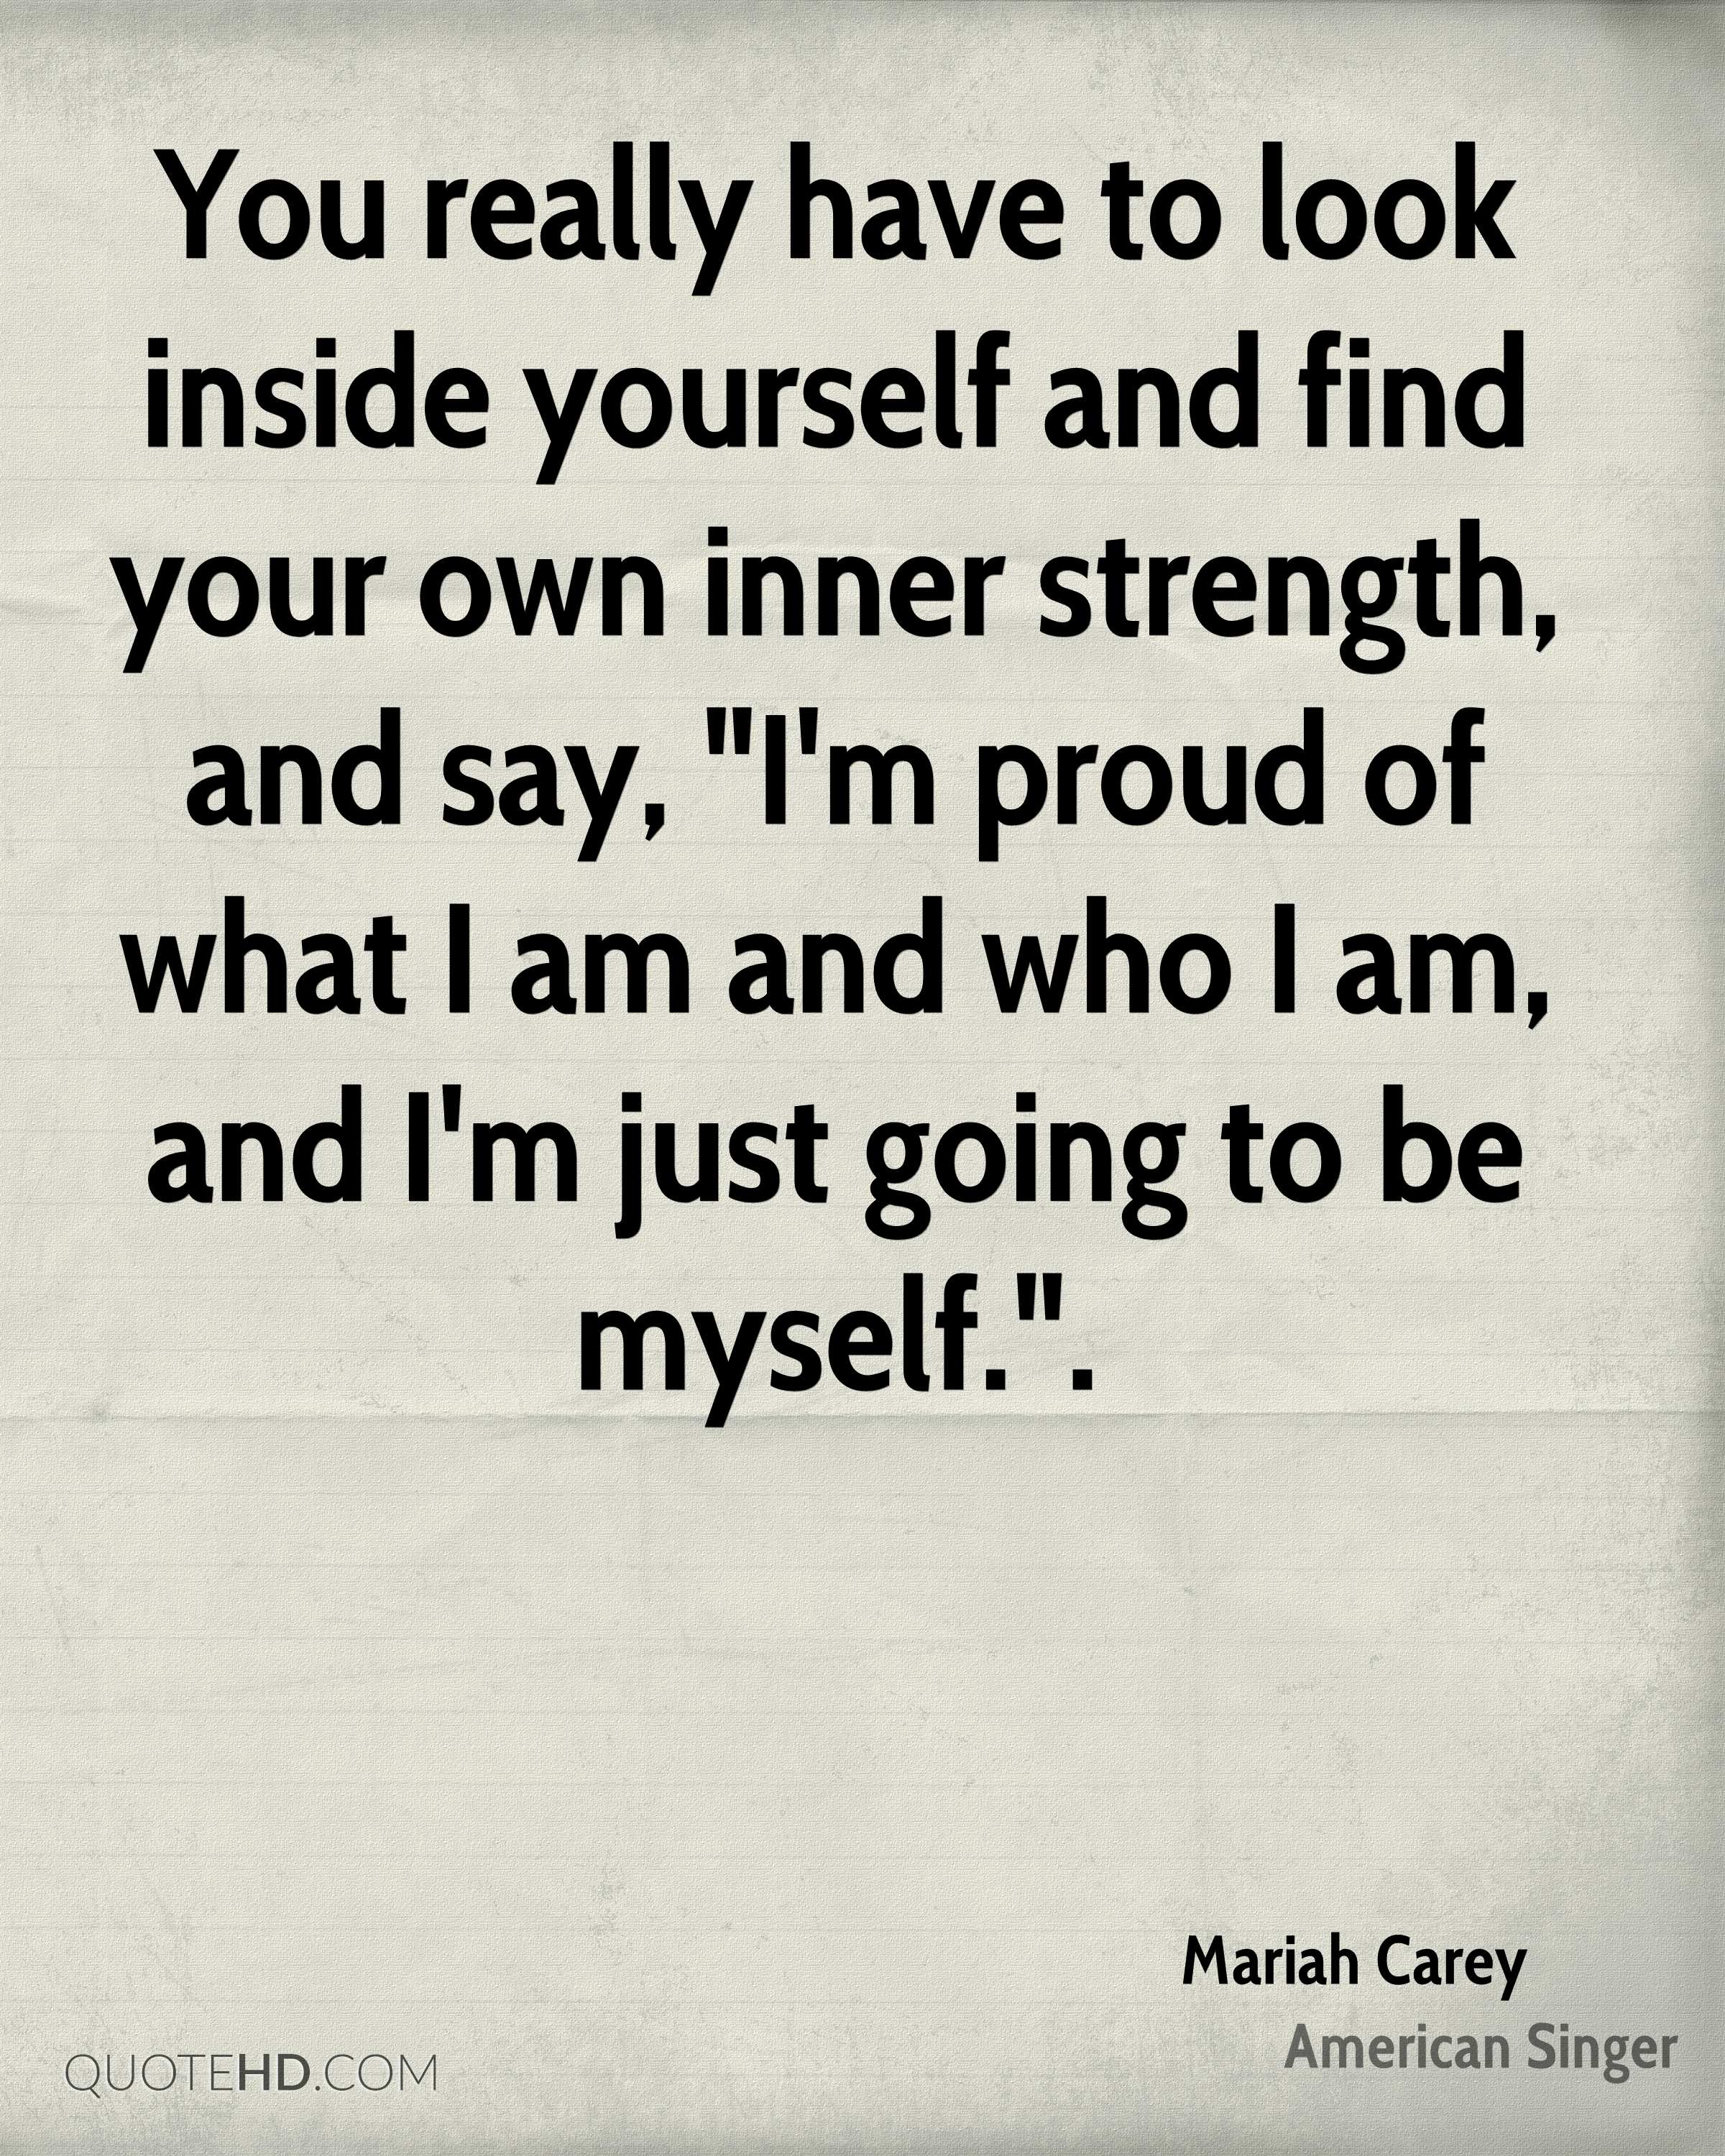 Finding Inner Strength Quotes: Mariah Carey Quotes